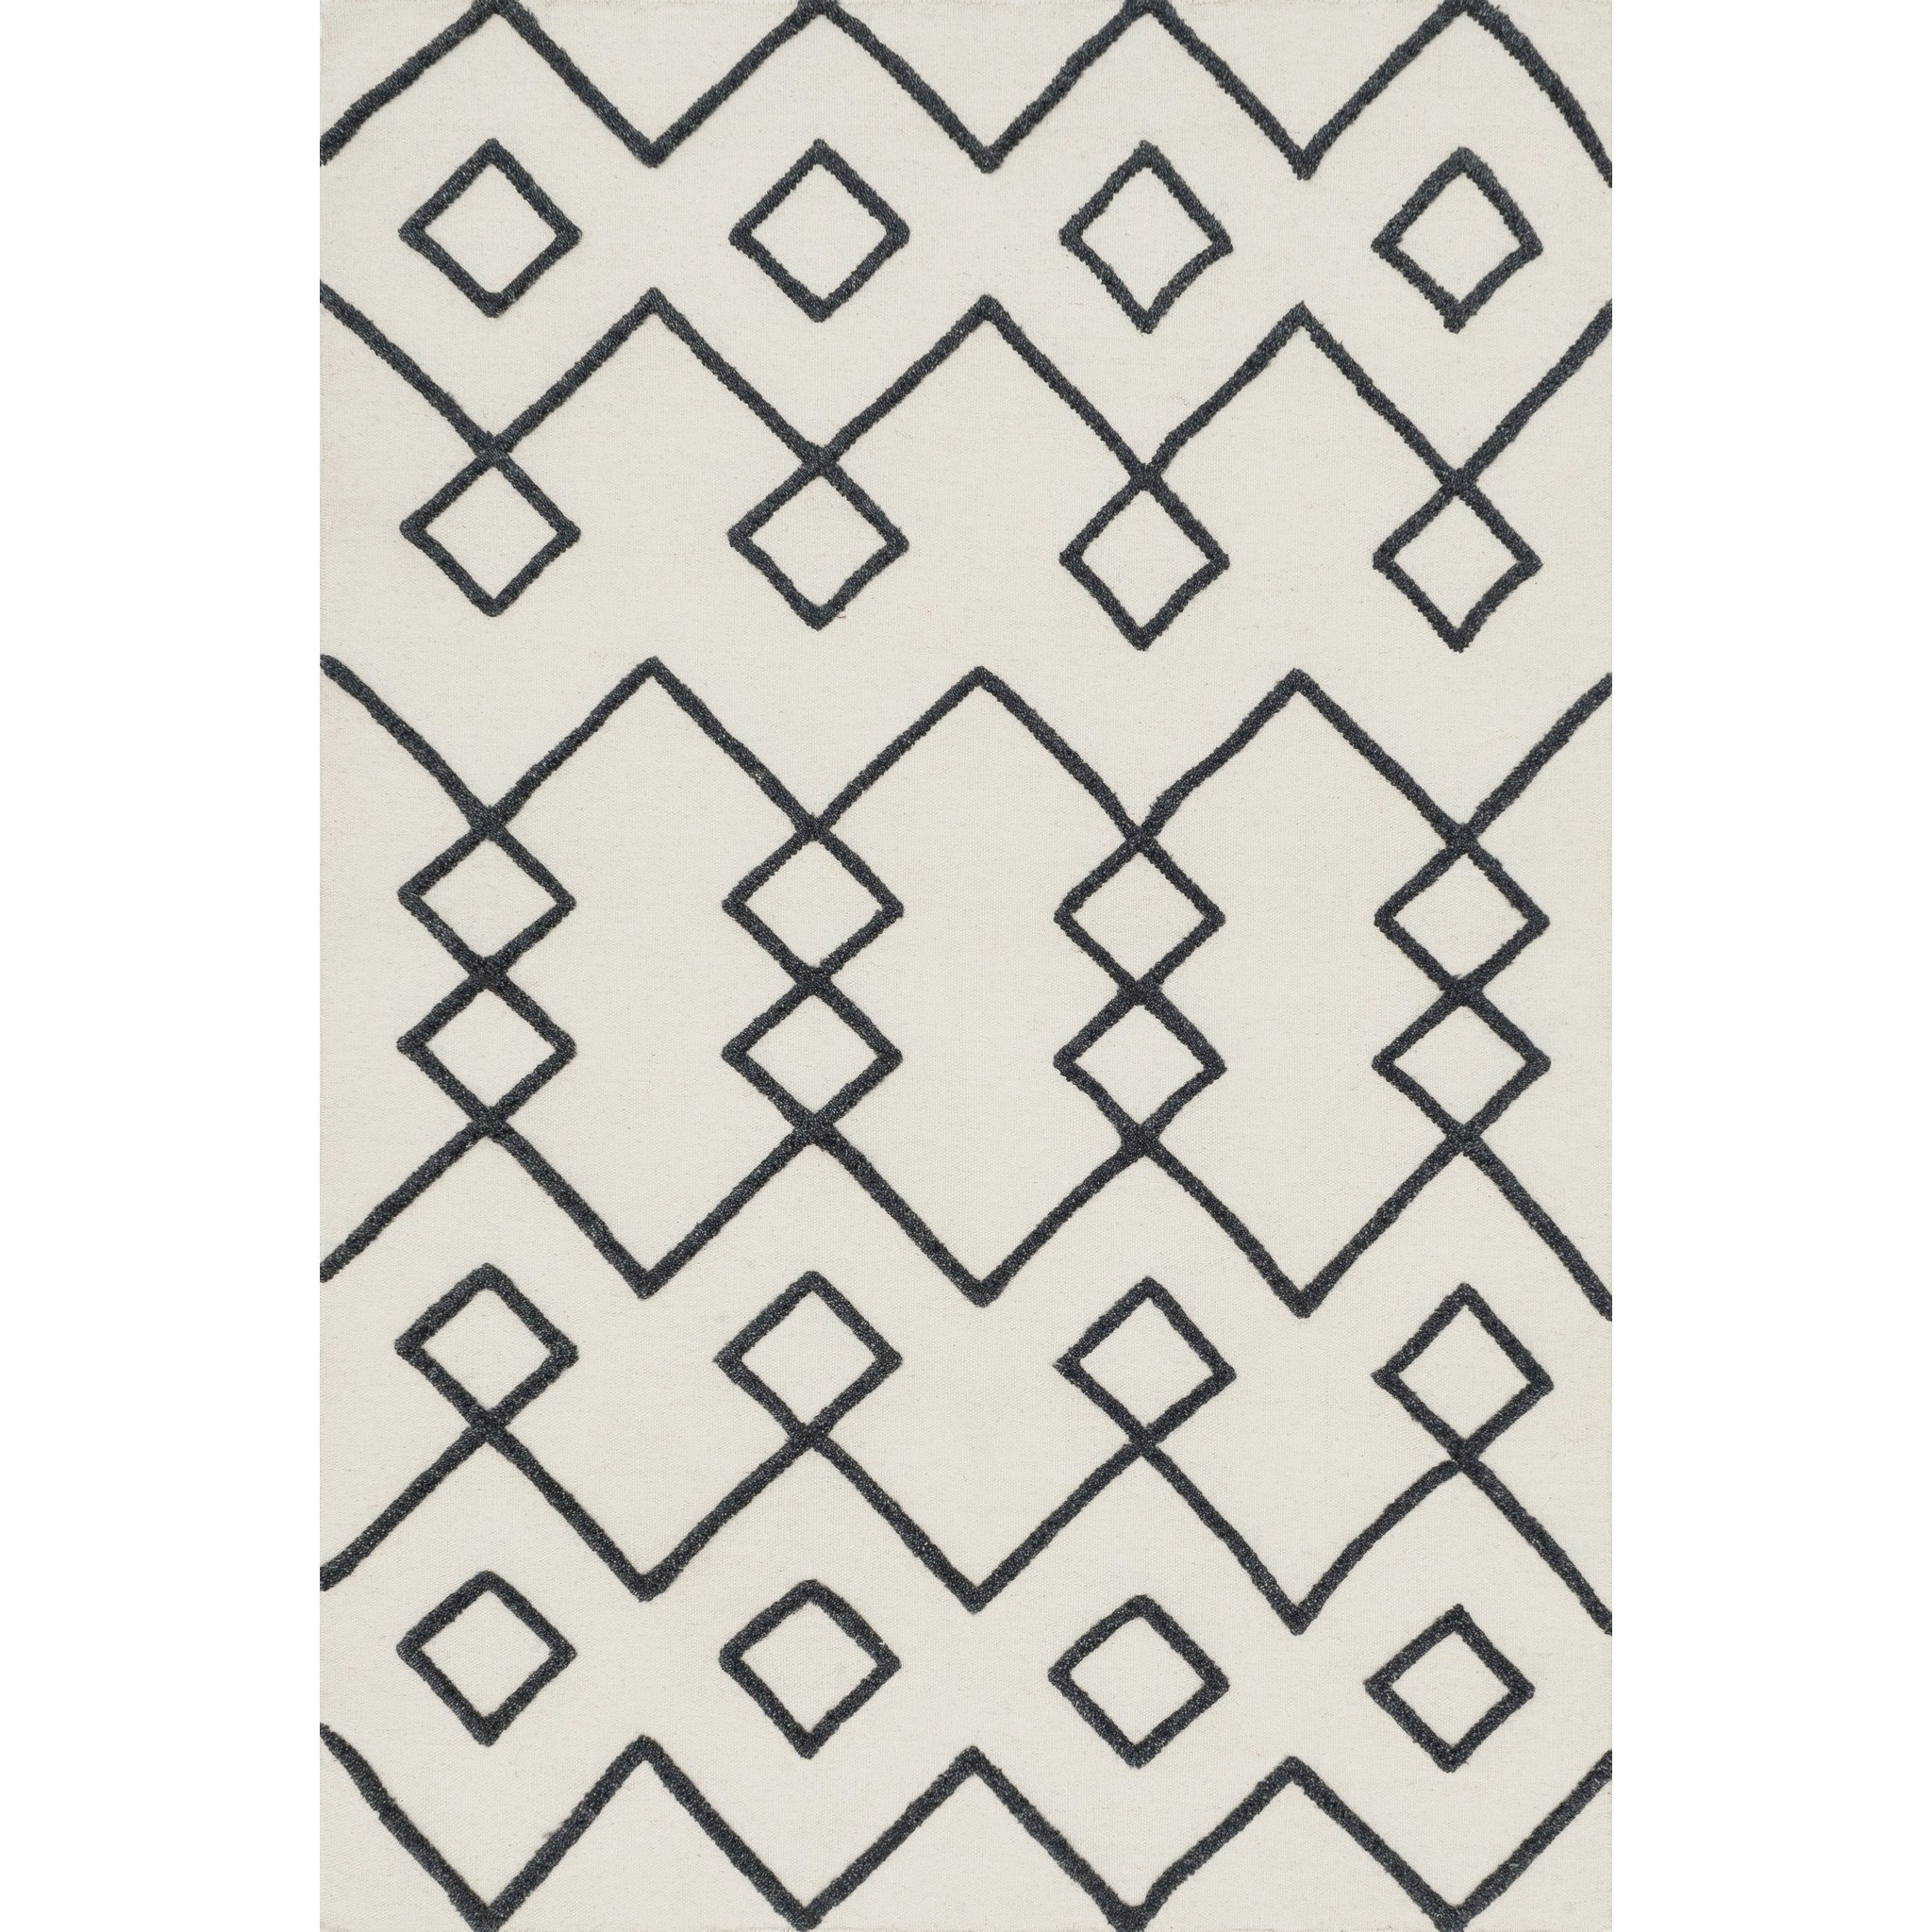 "Adler 5'-0"" x 7'-6"" Area Rug by Loloi Rugs at Virginia Furniture Market"